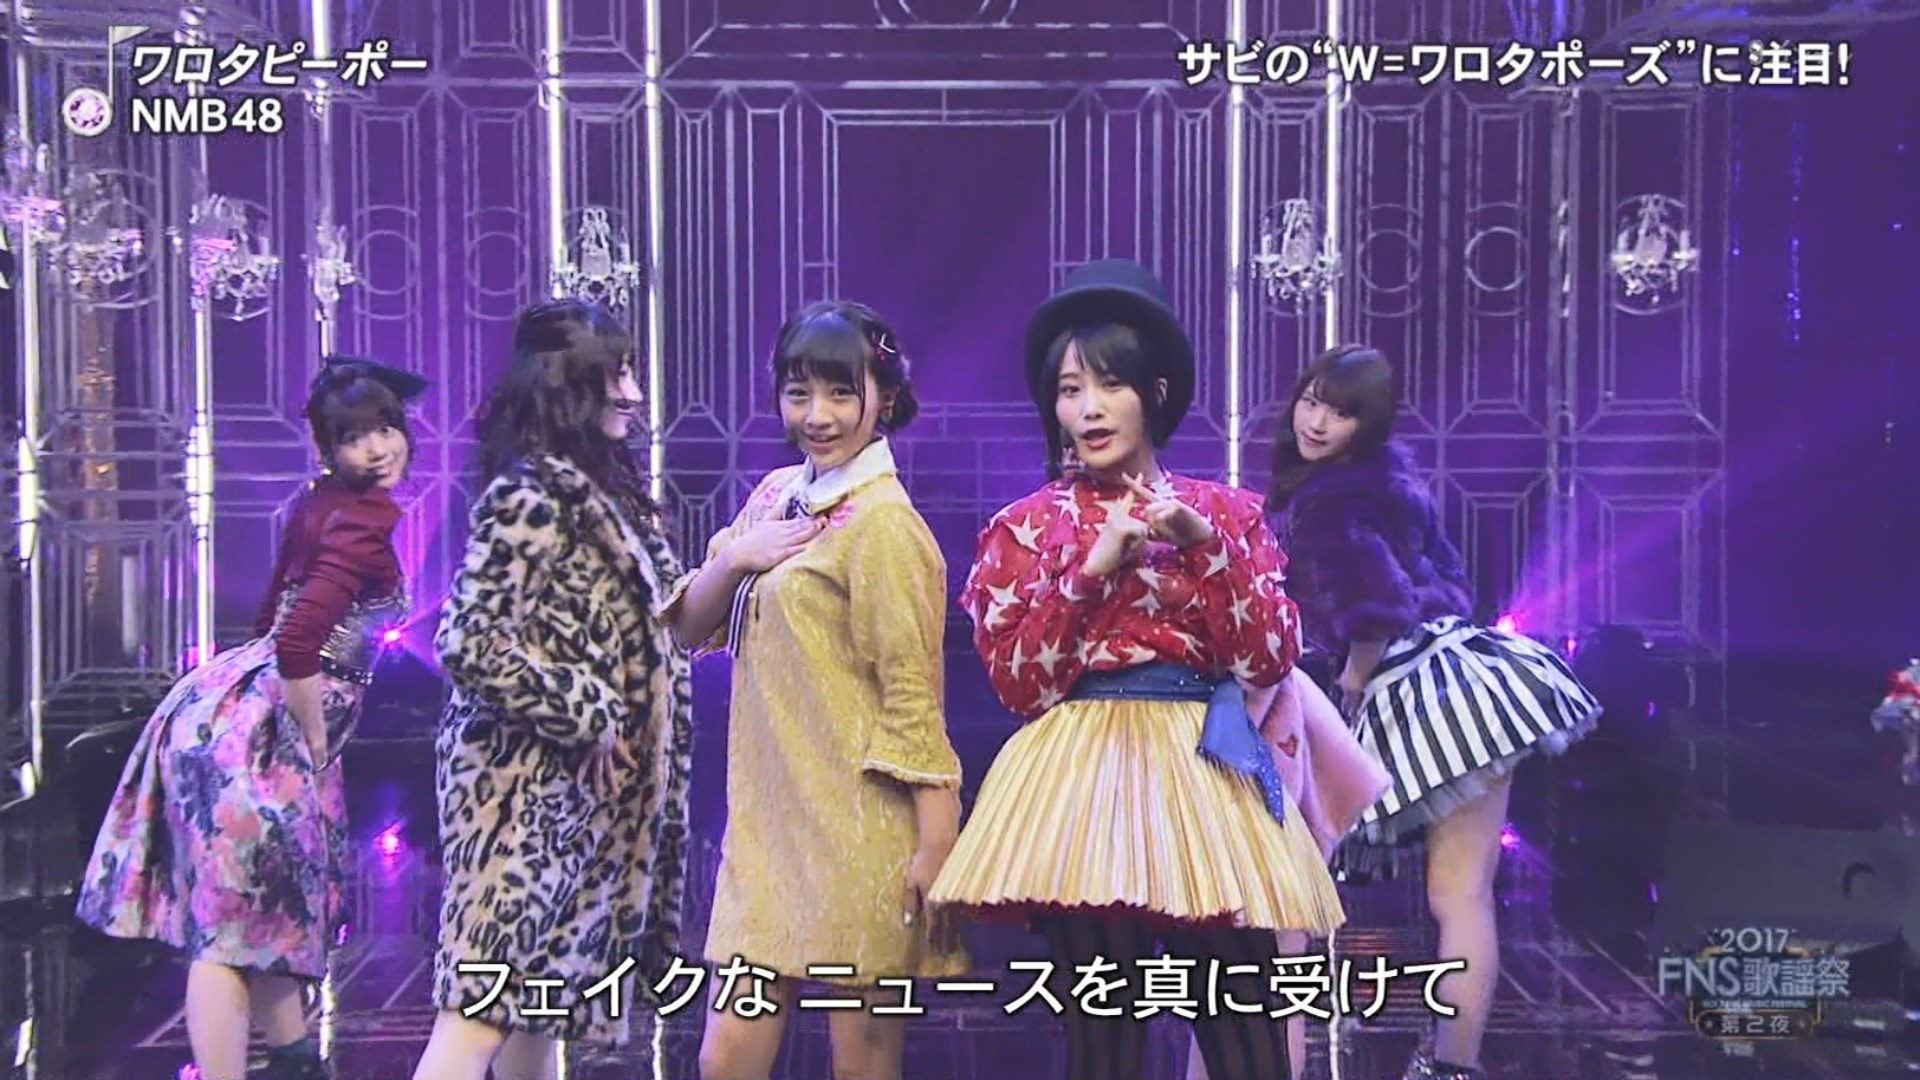 2017FNS歌謡祭第2夜・NMB48ワロタピーポーキャプ-028